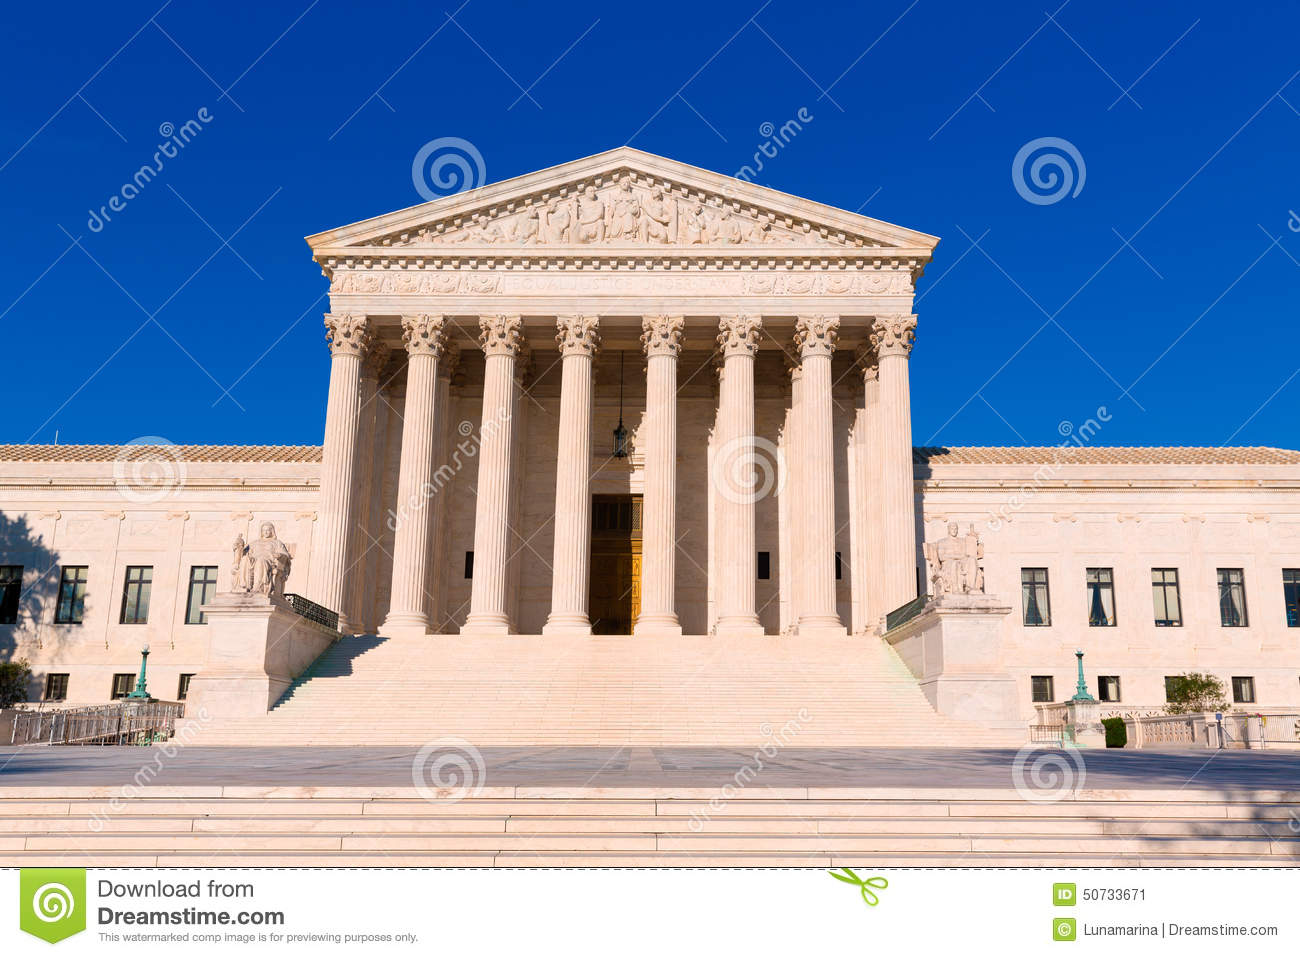 the role of supreme court in the united states The constitution also grants congress the power to establish courts inferior to the supreme court, and to that end congress has established the united states district courts, which try most .